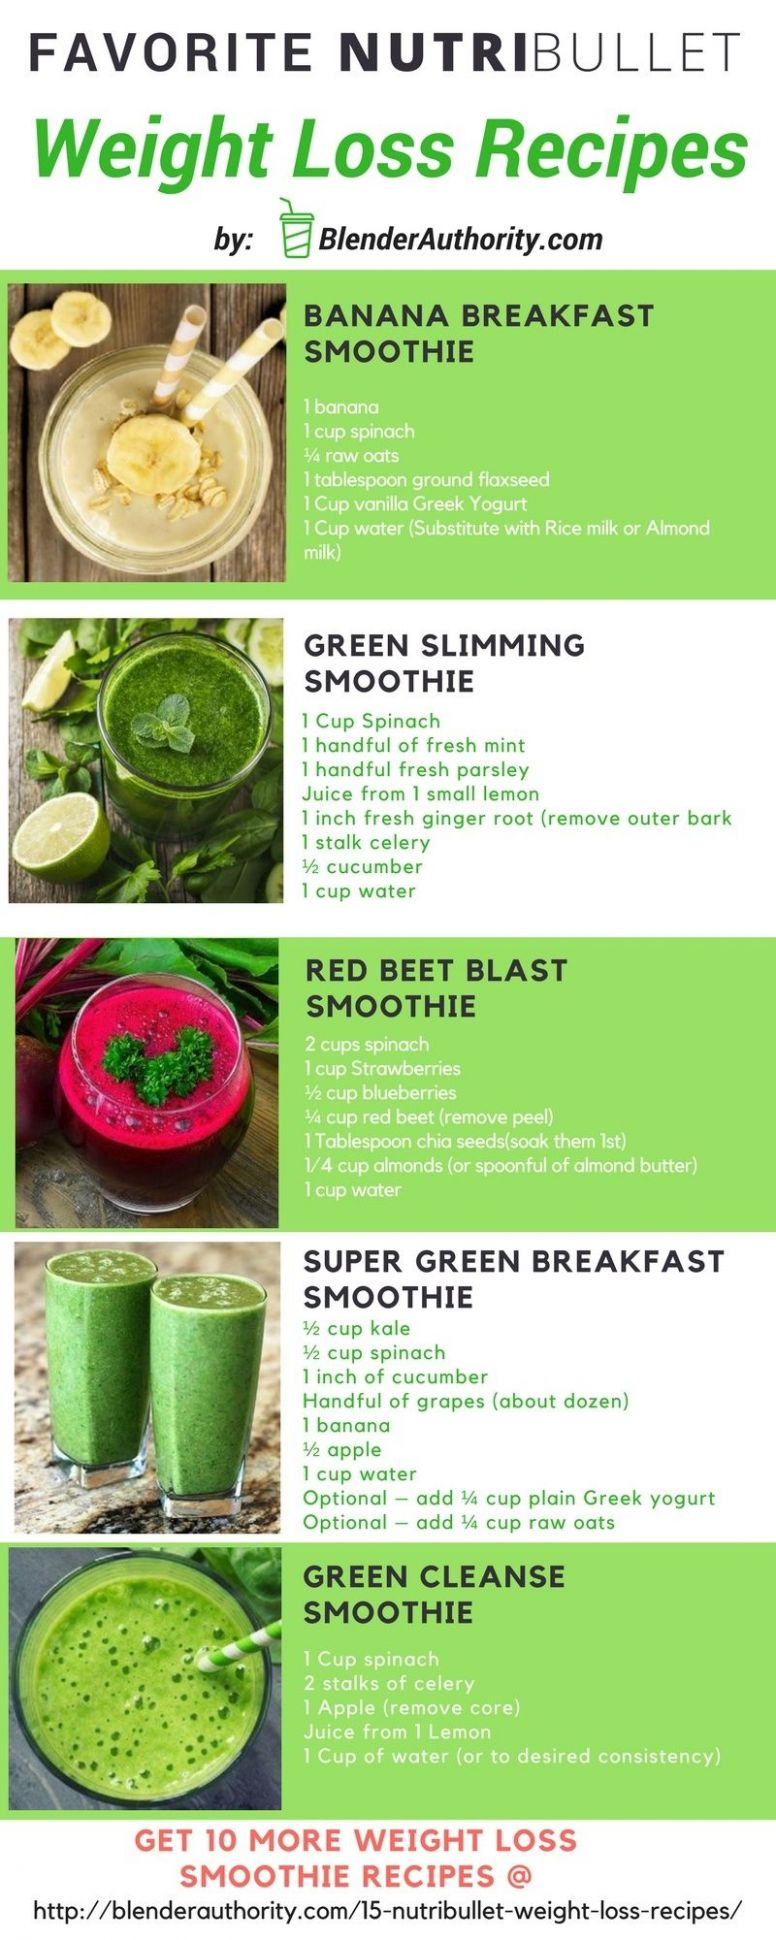 Pin on 8 Me - Smoothie Recipes For Weight Loss That Taste Good